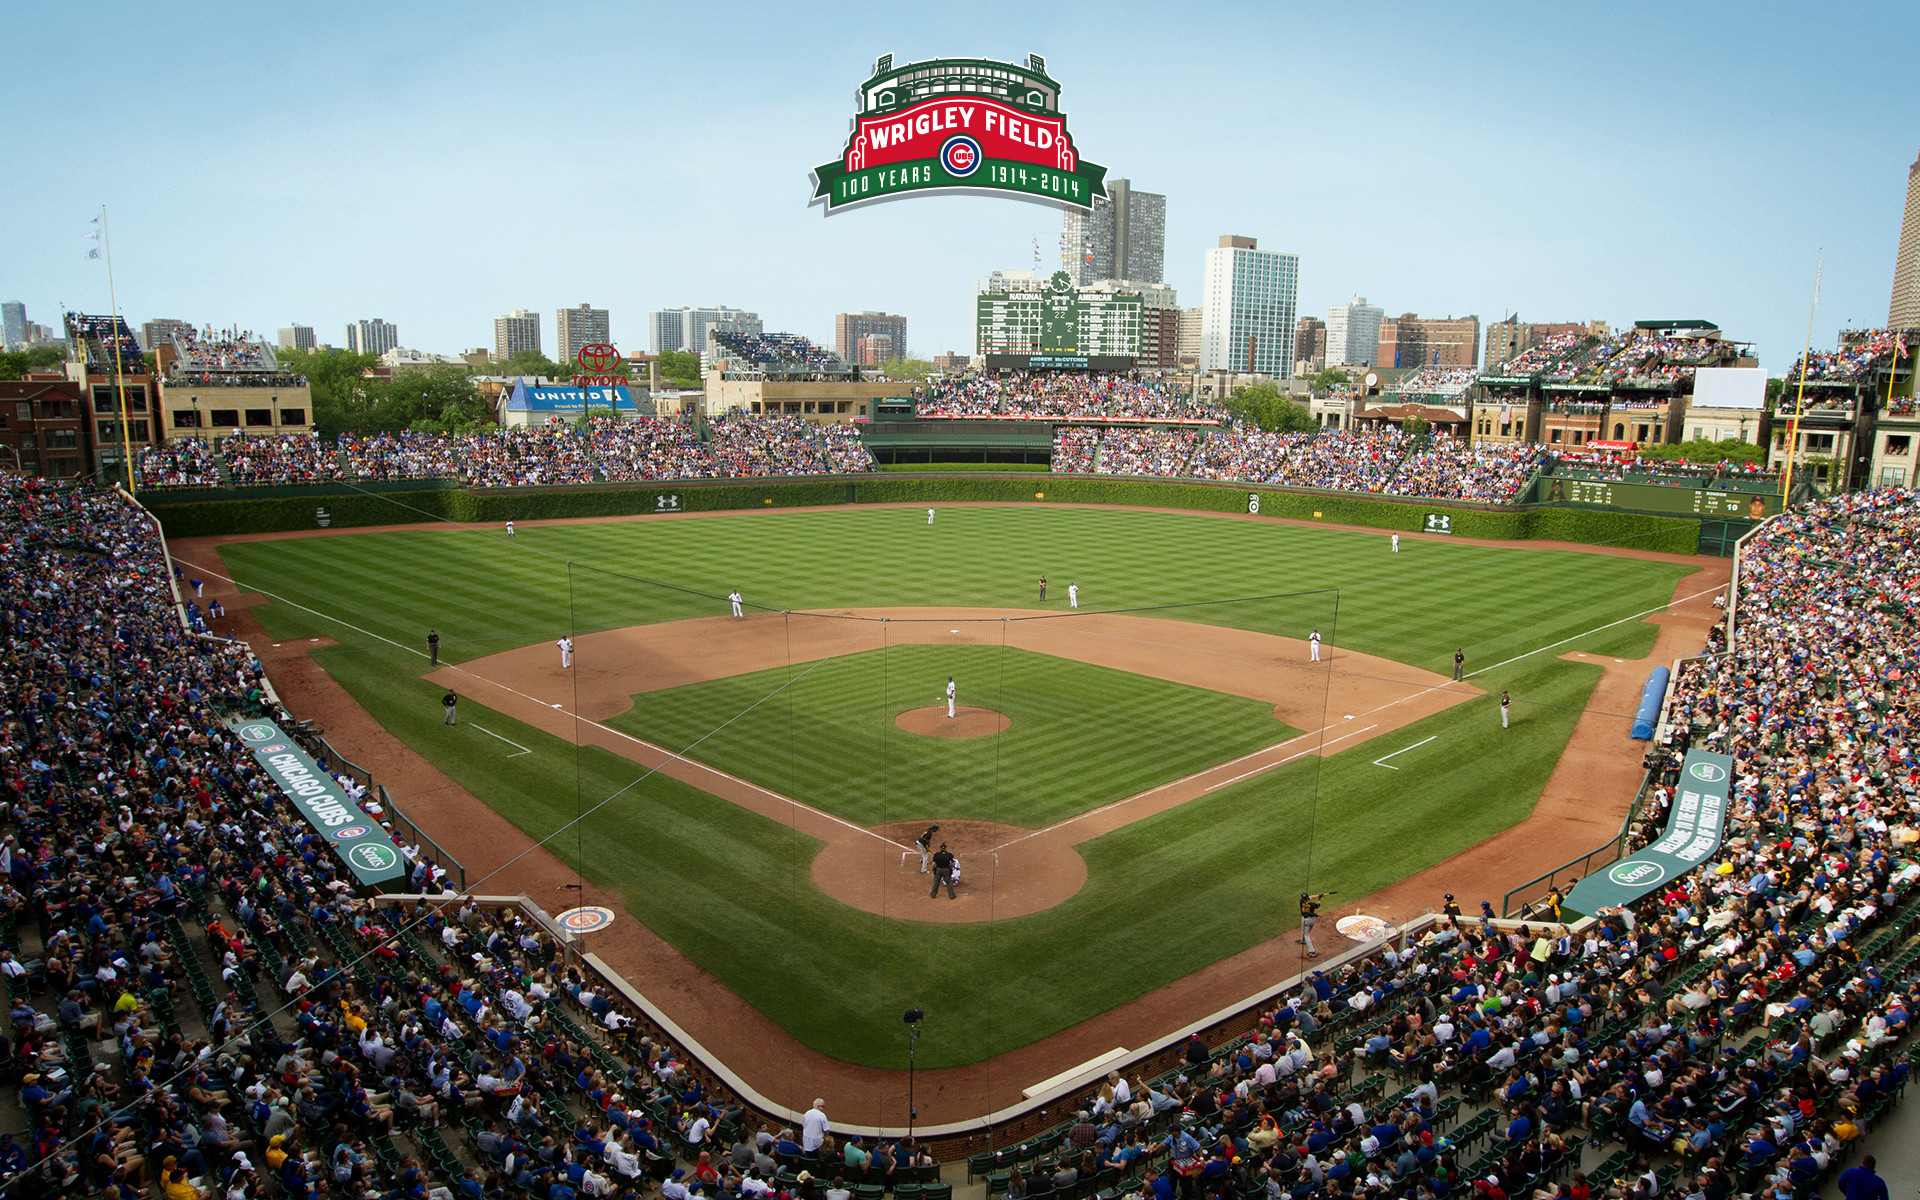 1920x1200 Wrigley Field 100 Chicago Cubs